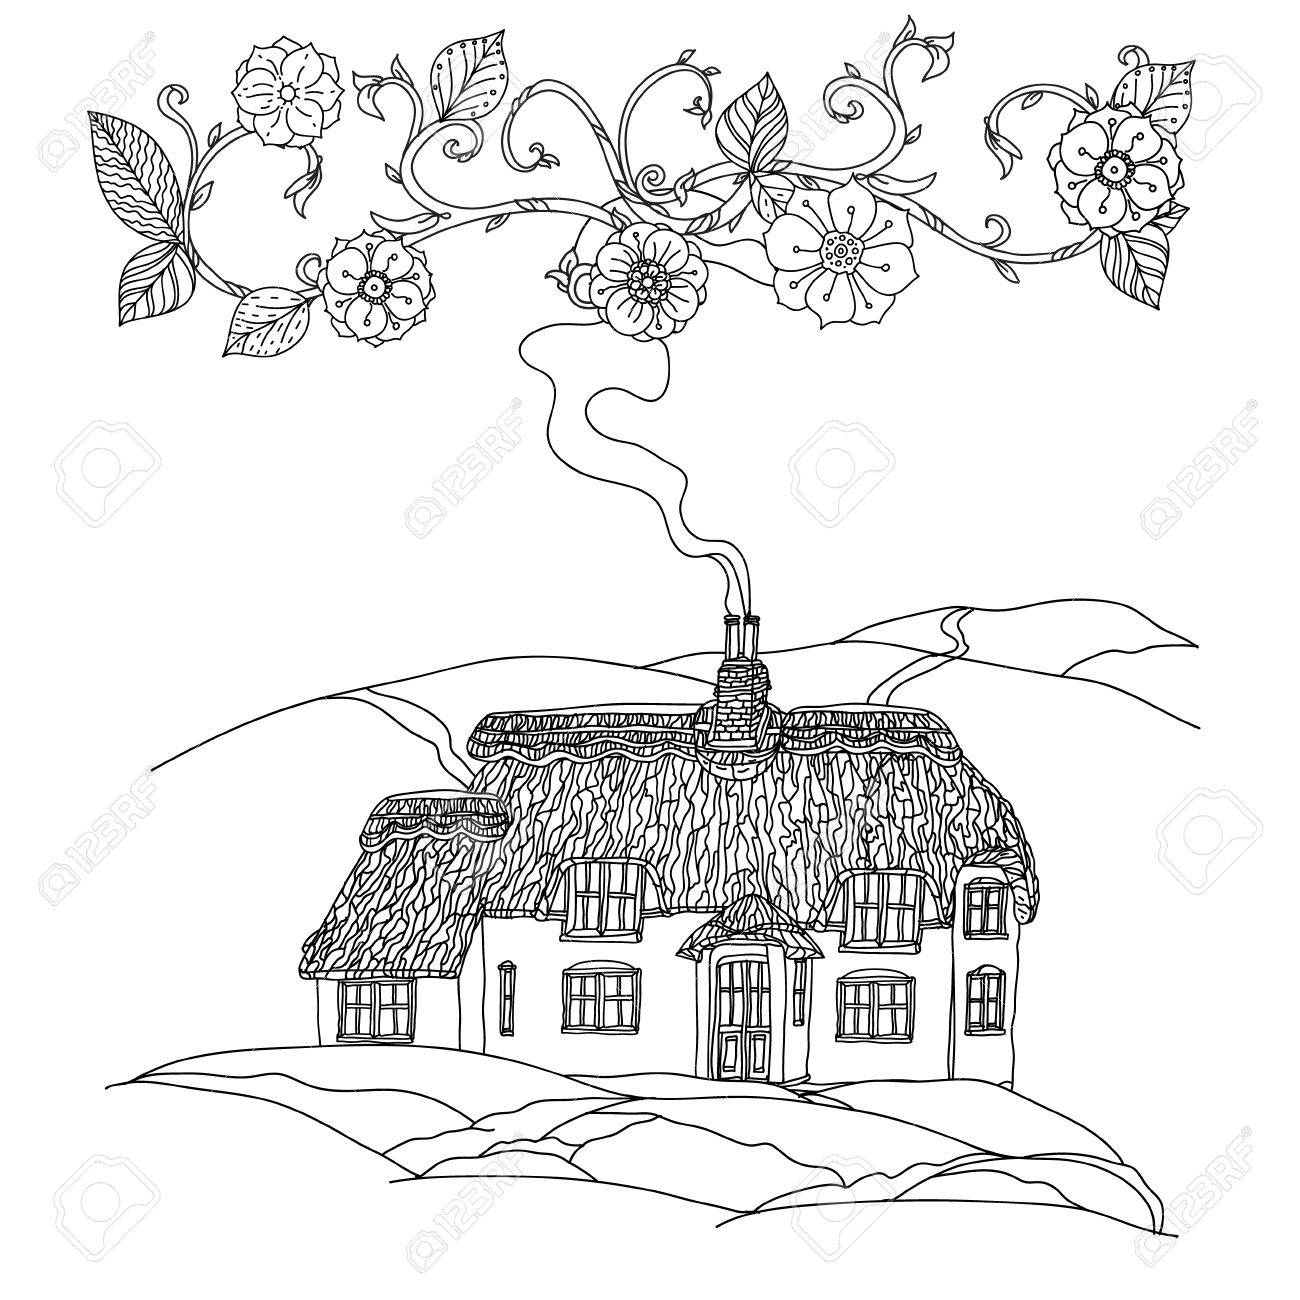 Black And White Flowers Victorian House For Adult Coloring Book Zenart Style